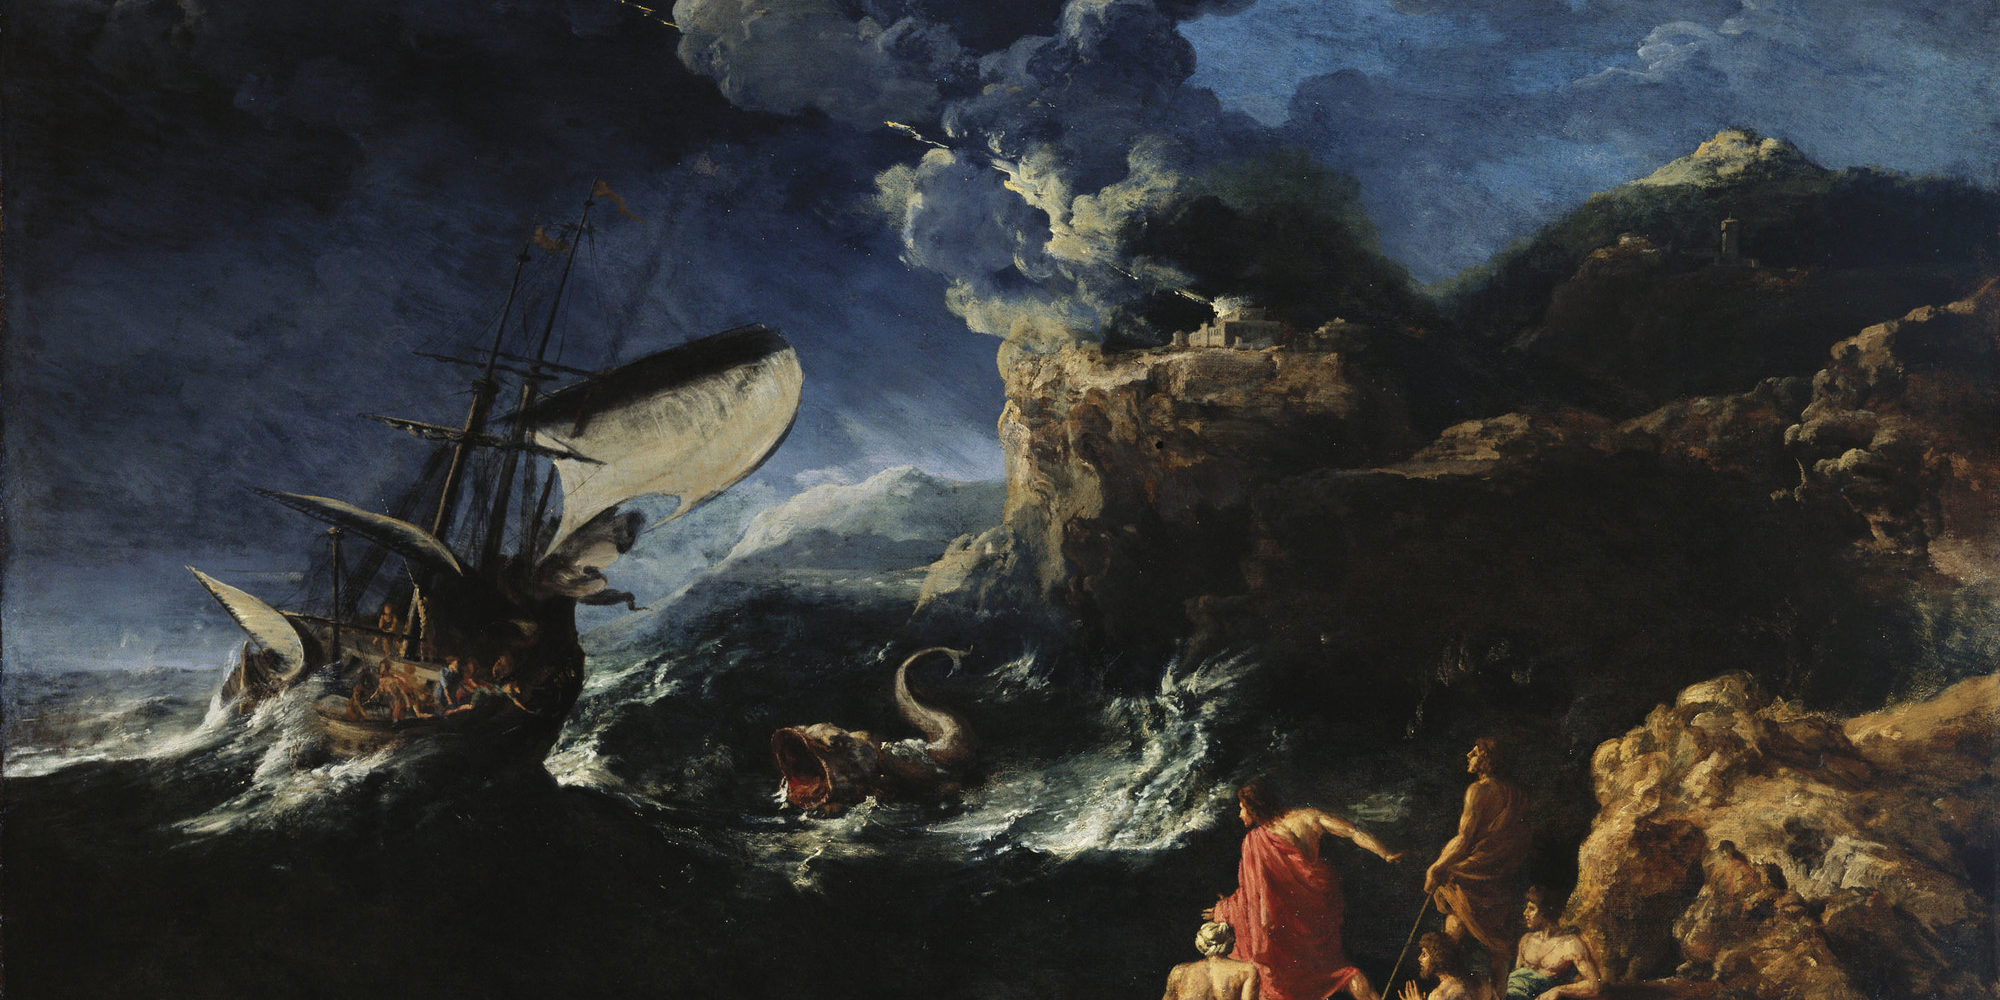 Gaspard_Dughet_(1615-75)_-_Seascape_with_Jonah_and_the_Whale_-_RCIN_405355_-_Royal_Collection